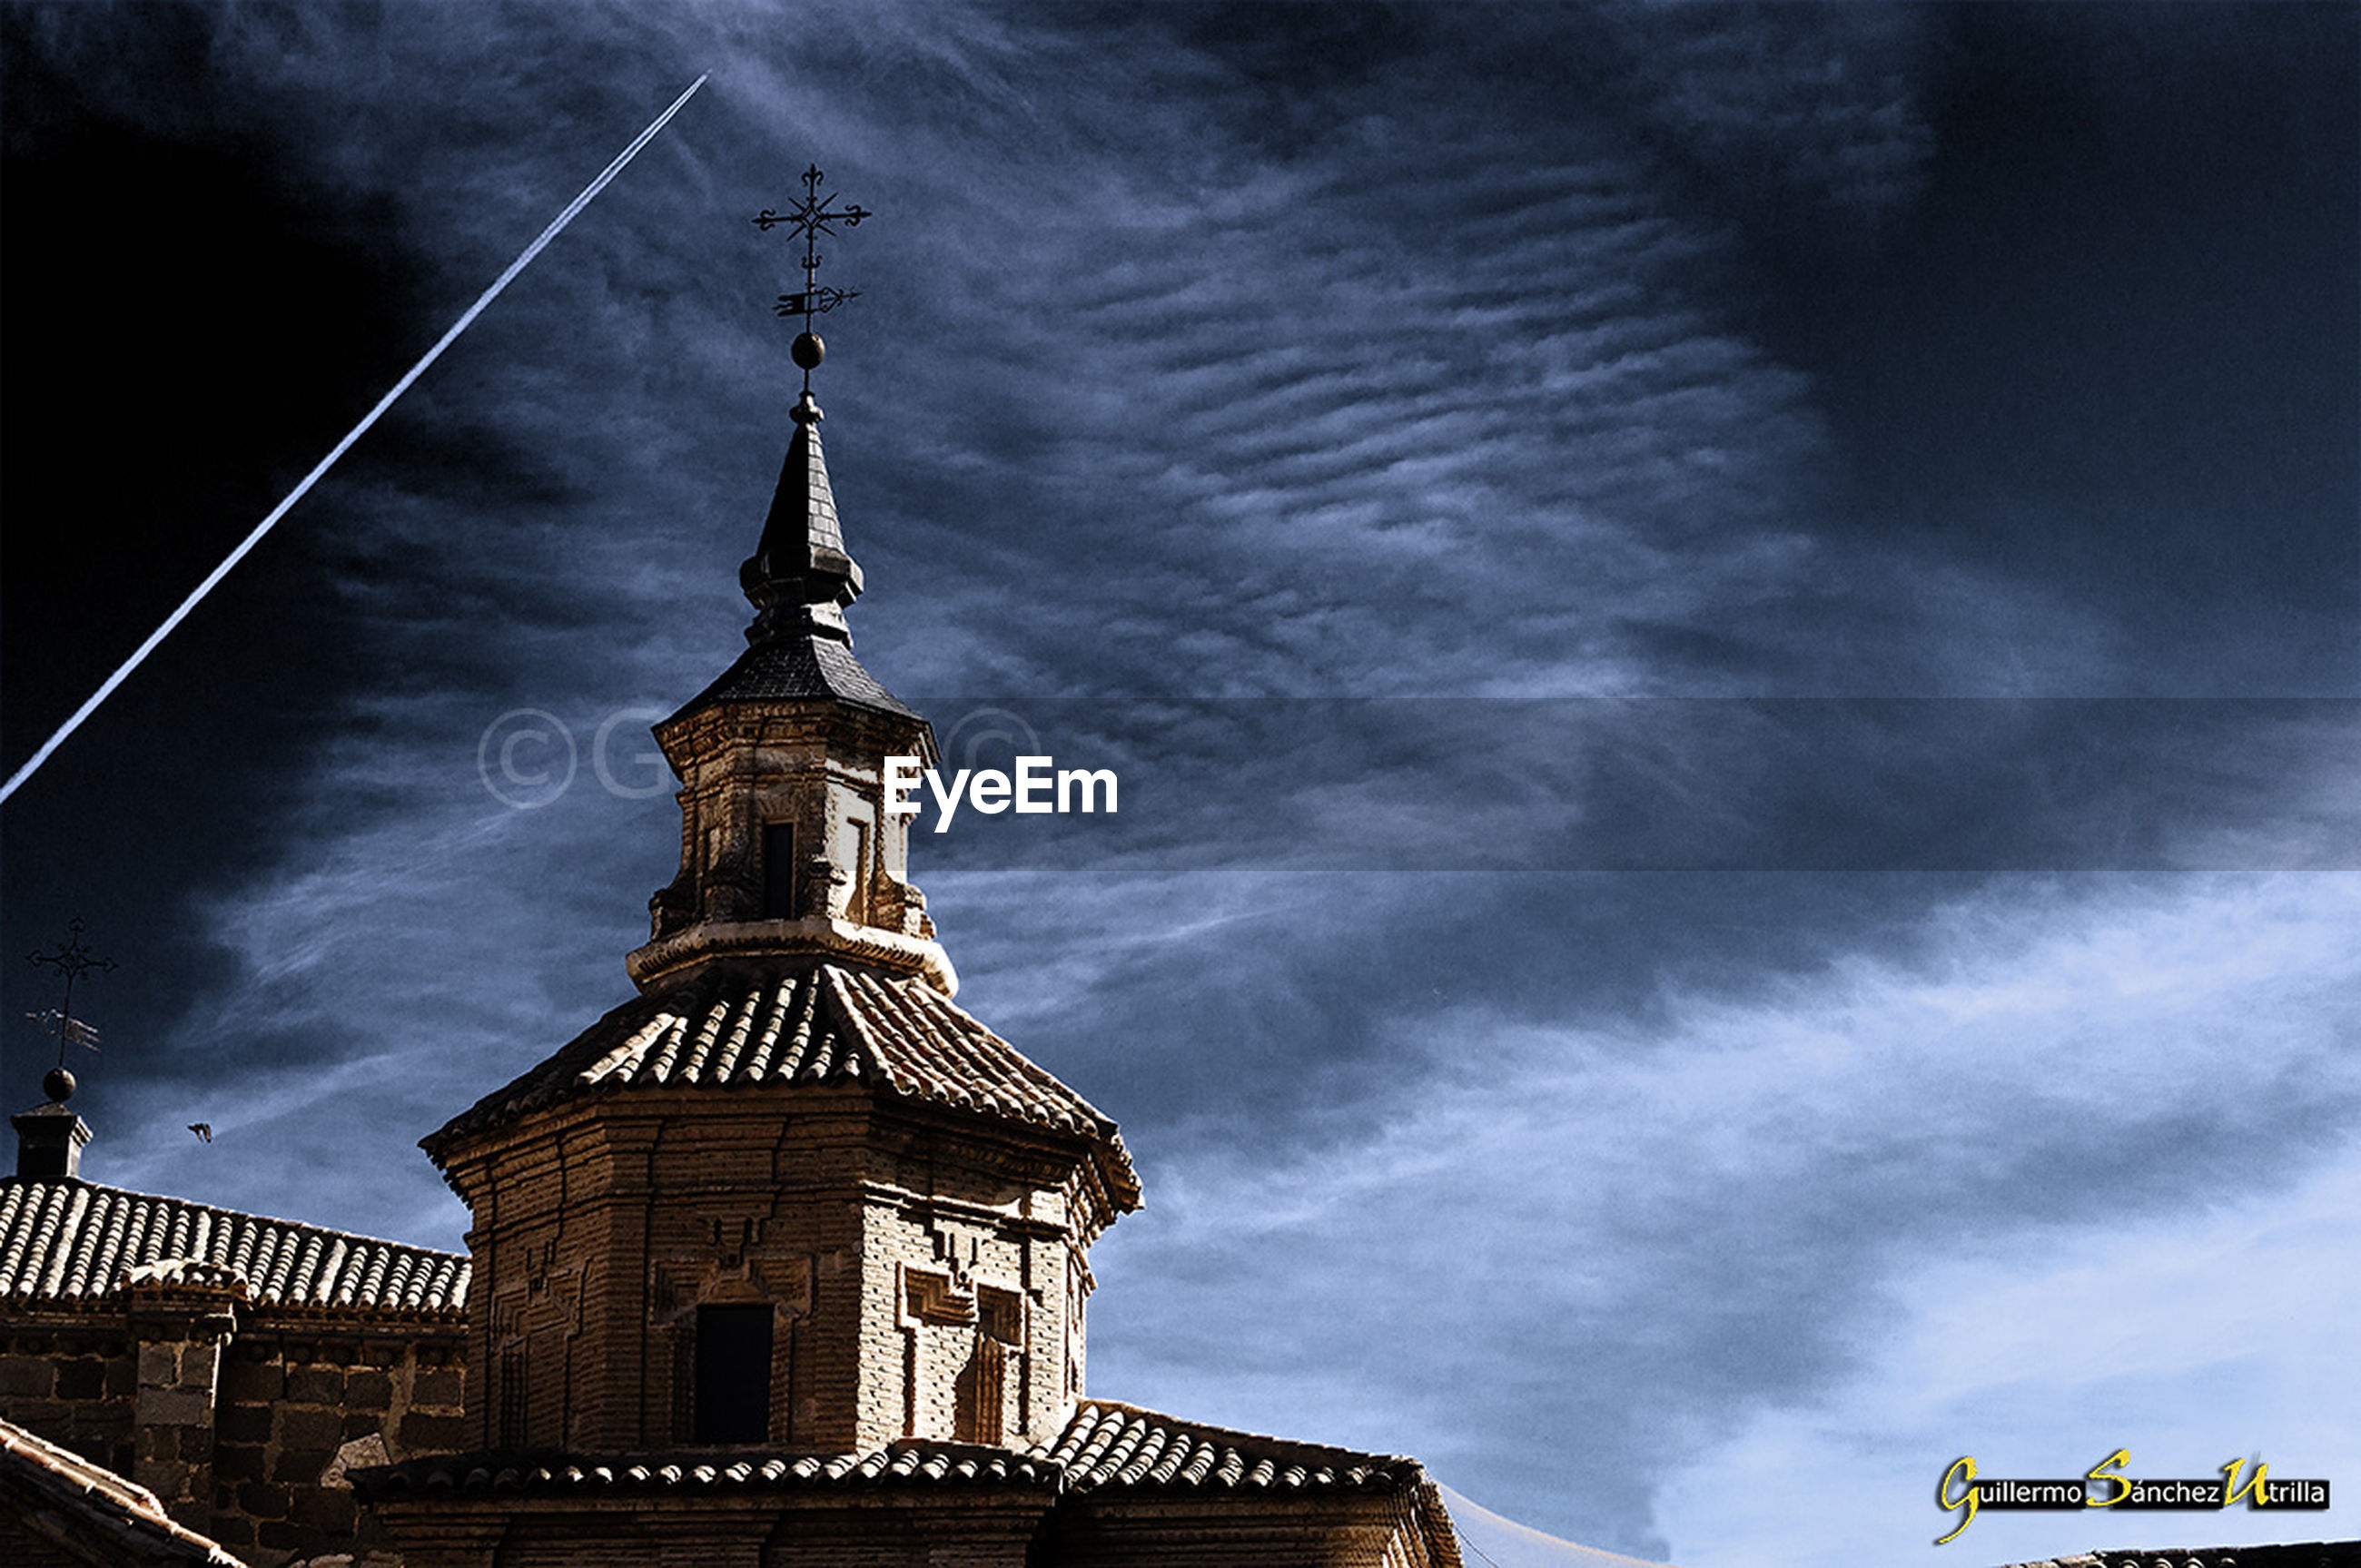 sky, architecture, cloud - sky, building exterior, built structure, low angle view, religion, no people, outdoors, spirituality, dramatic sky, place of worship, night, clock tower, astronomy, clock